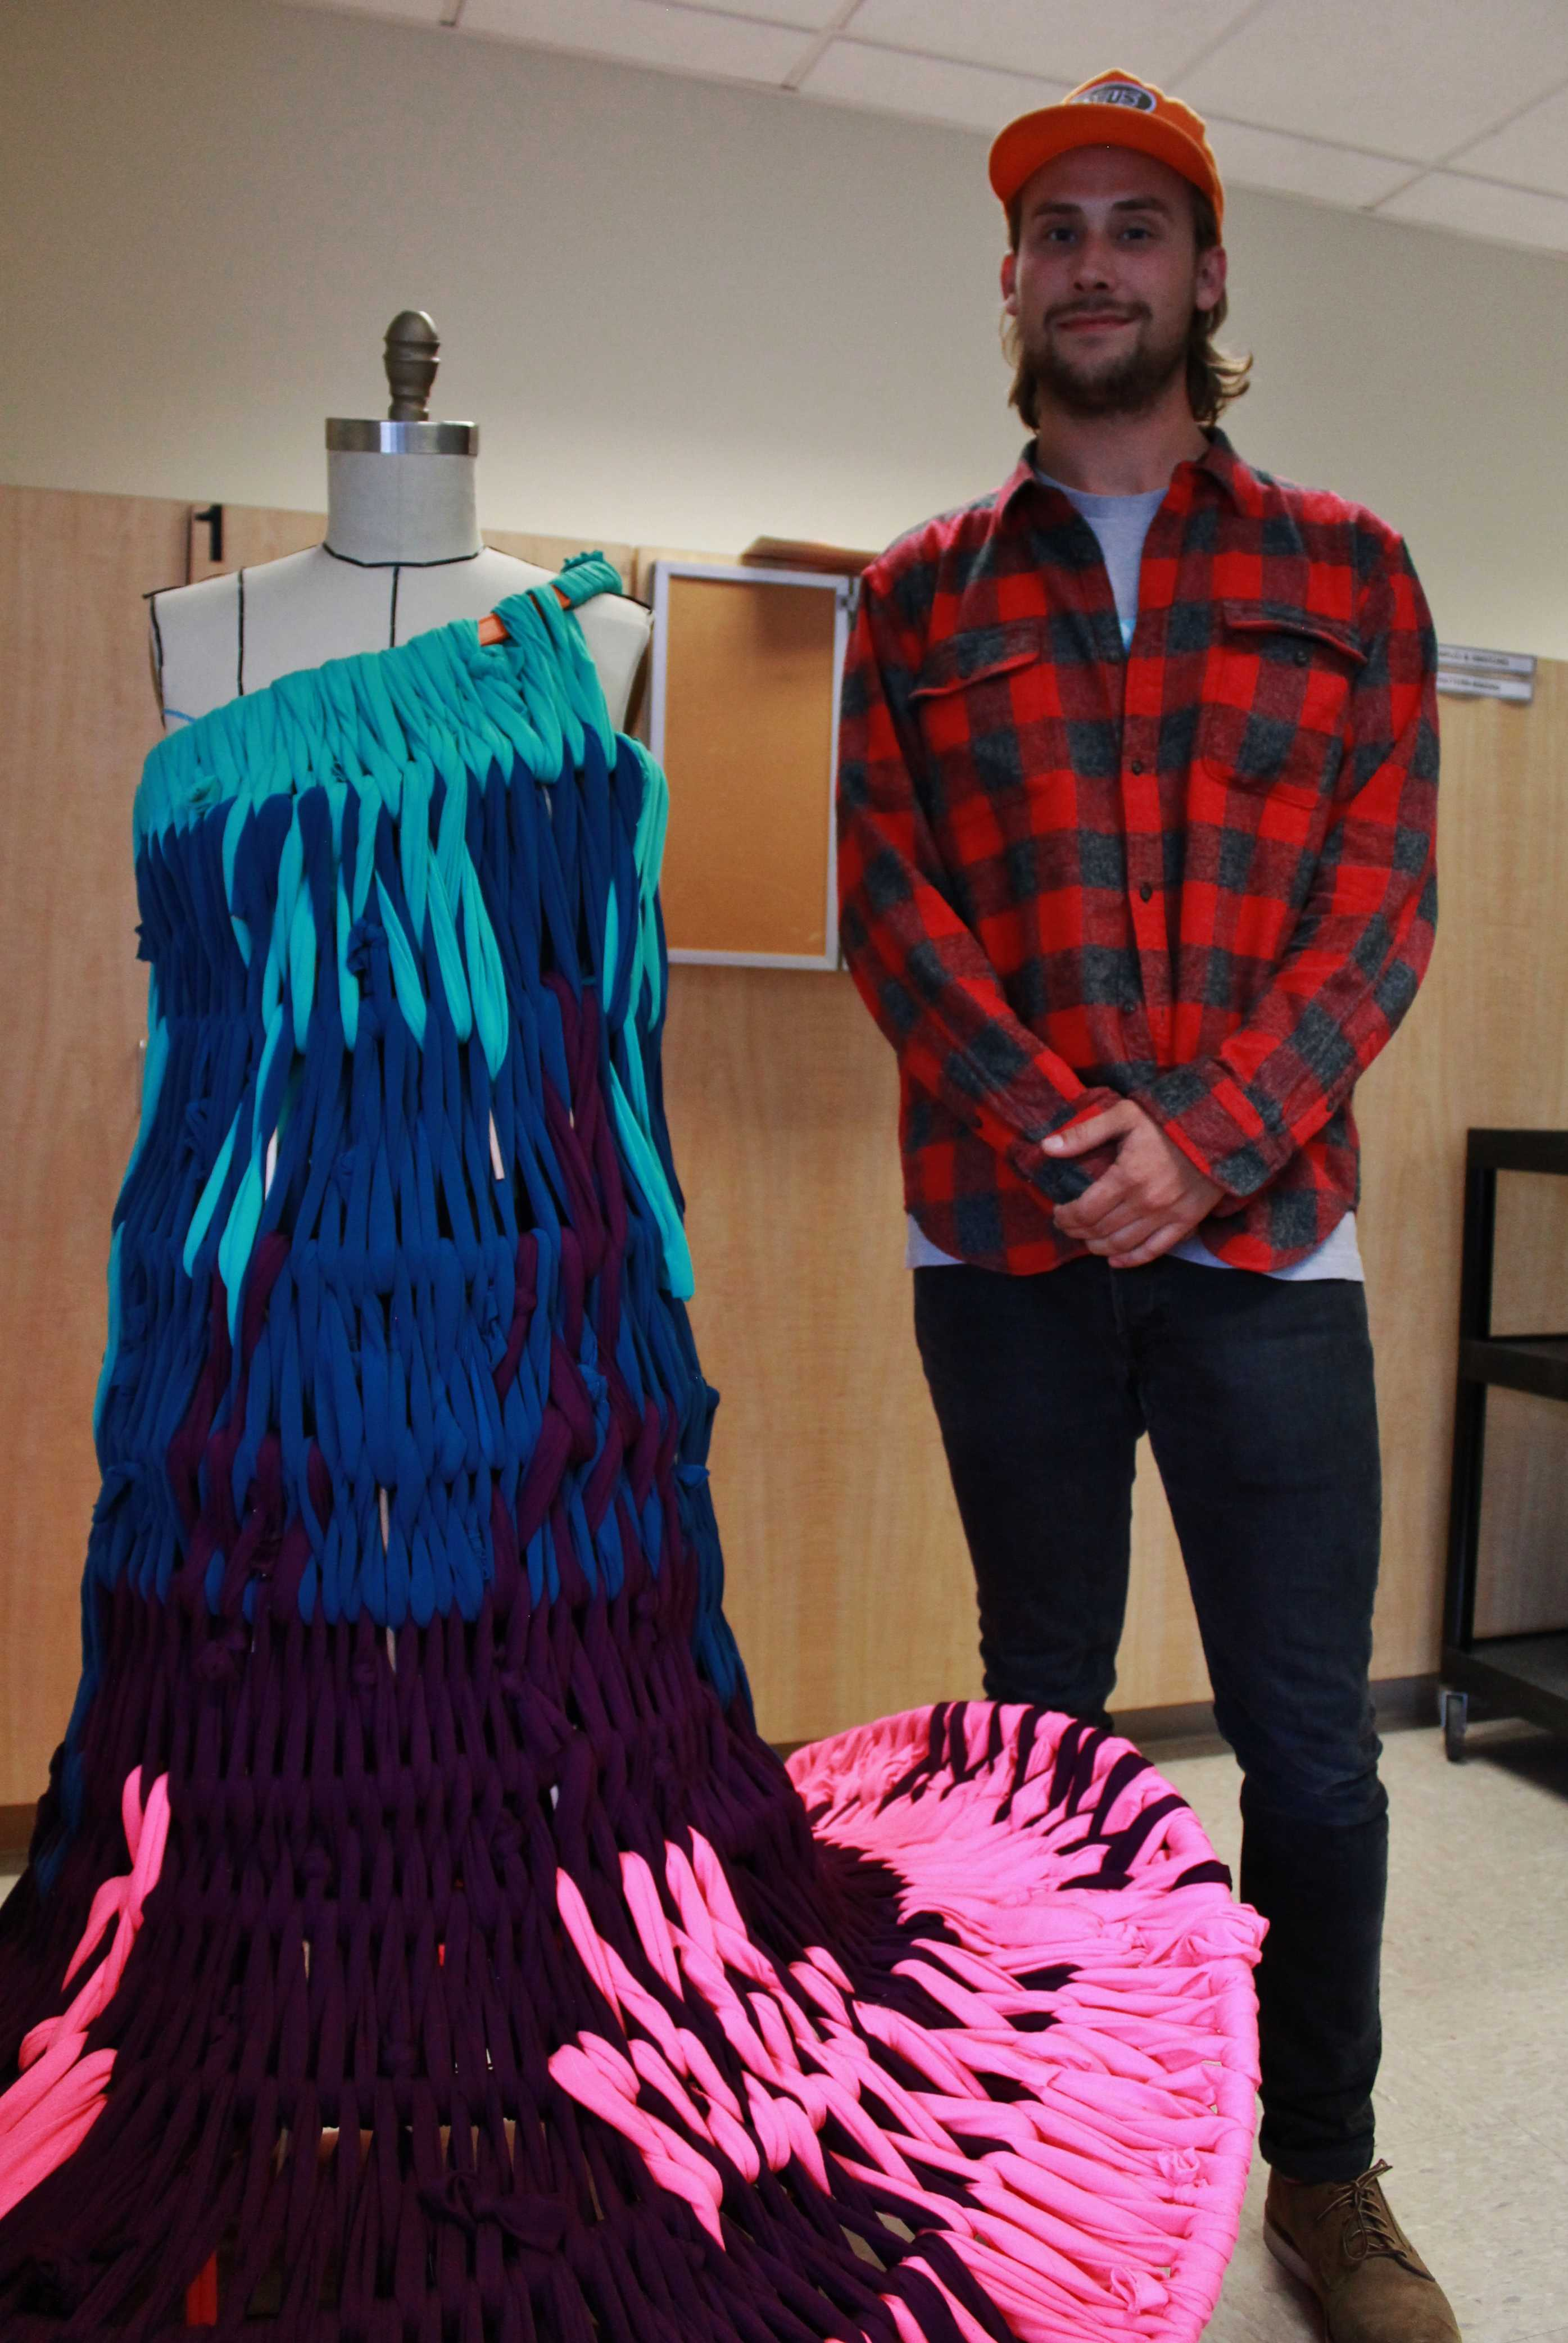 man in red plaid stands beside mannequin with colorful dress